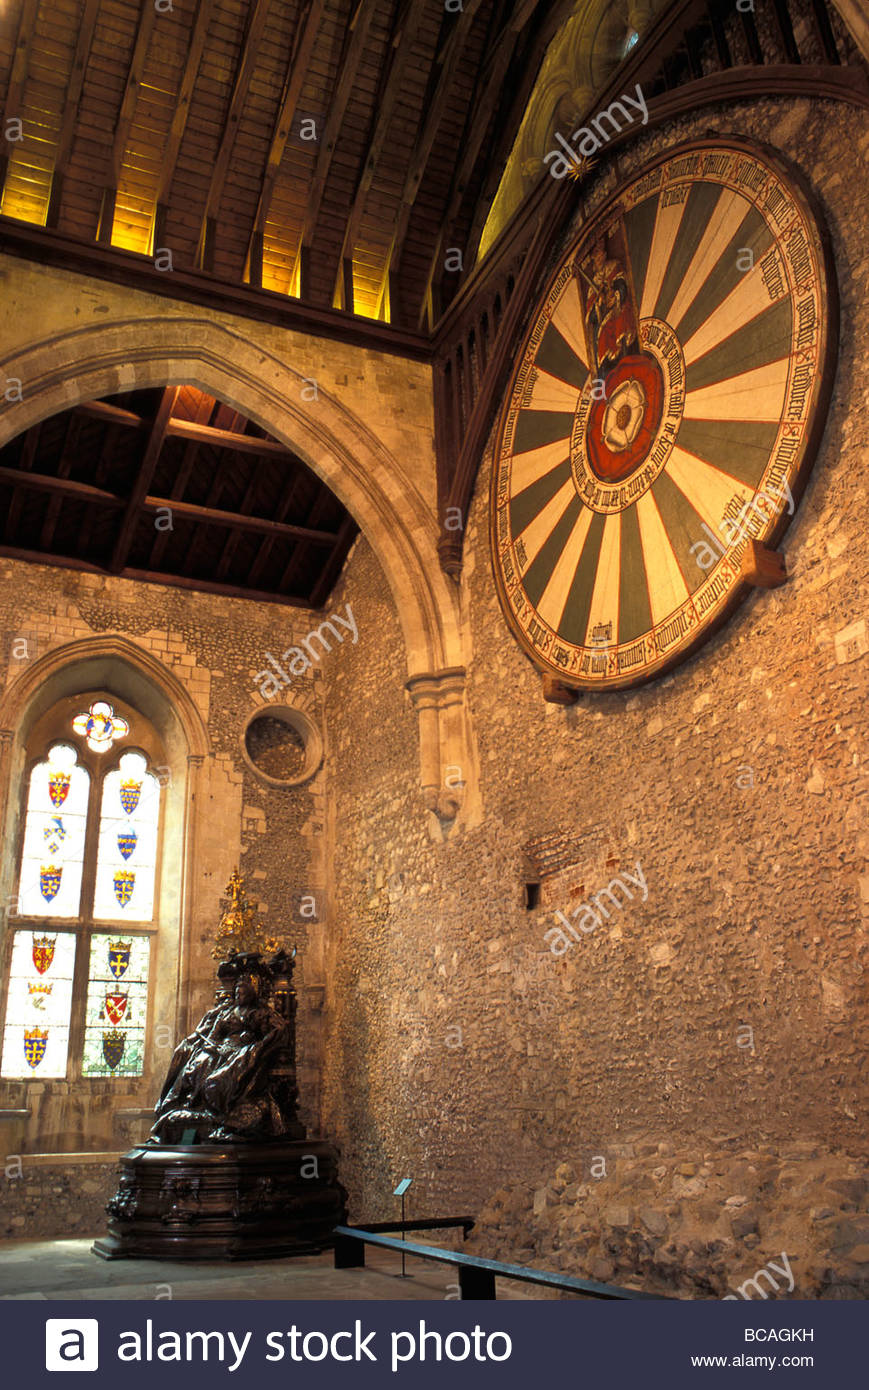 The roundtable, built during King Arthur's reign, hanging  in the Graet Hall in Winchester, England. - Stock Image